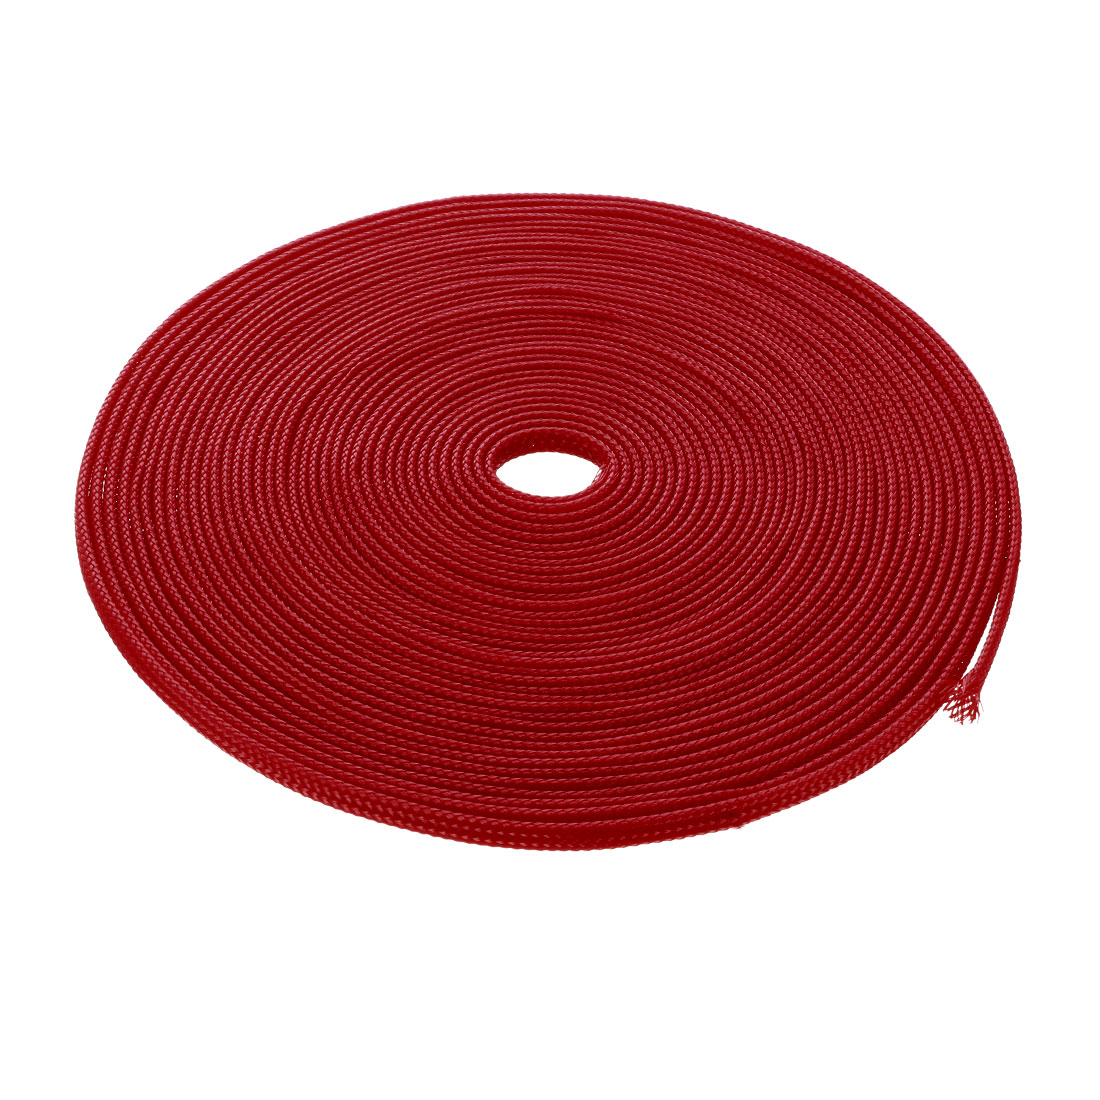 6mm Dia Tight Braided PET Expandable Sleeving Cable Wire Wrap Sheath Red 10M